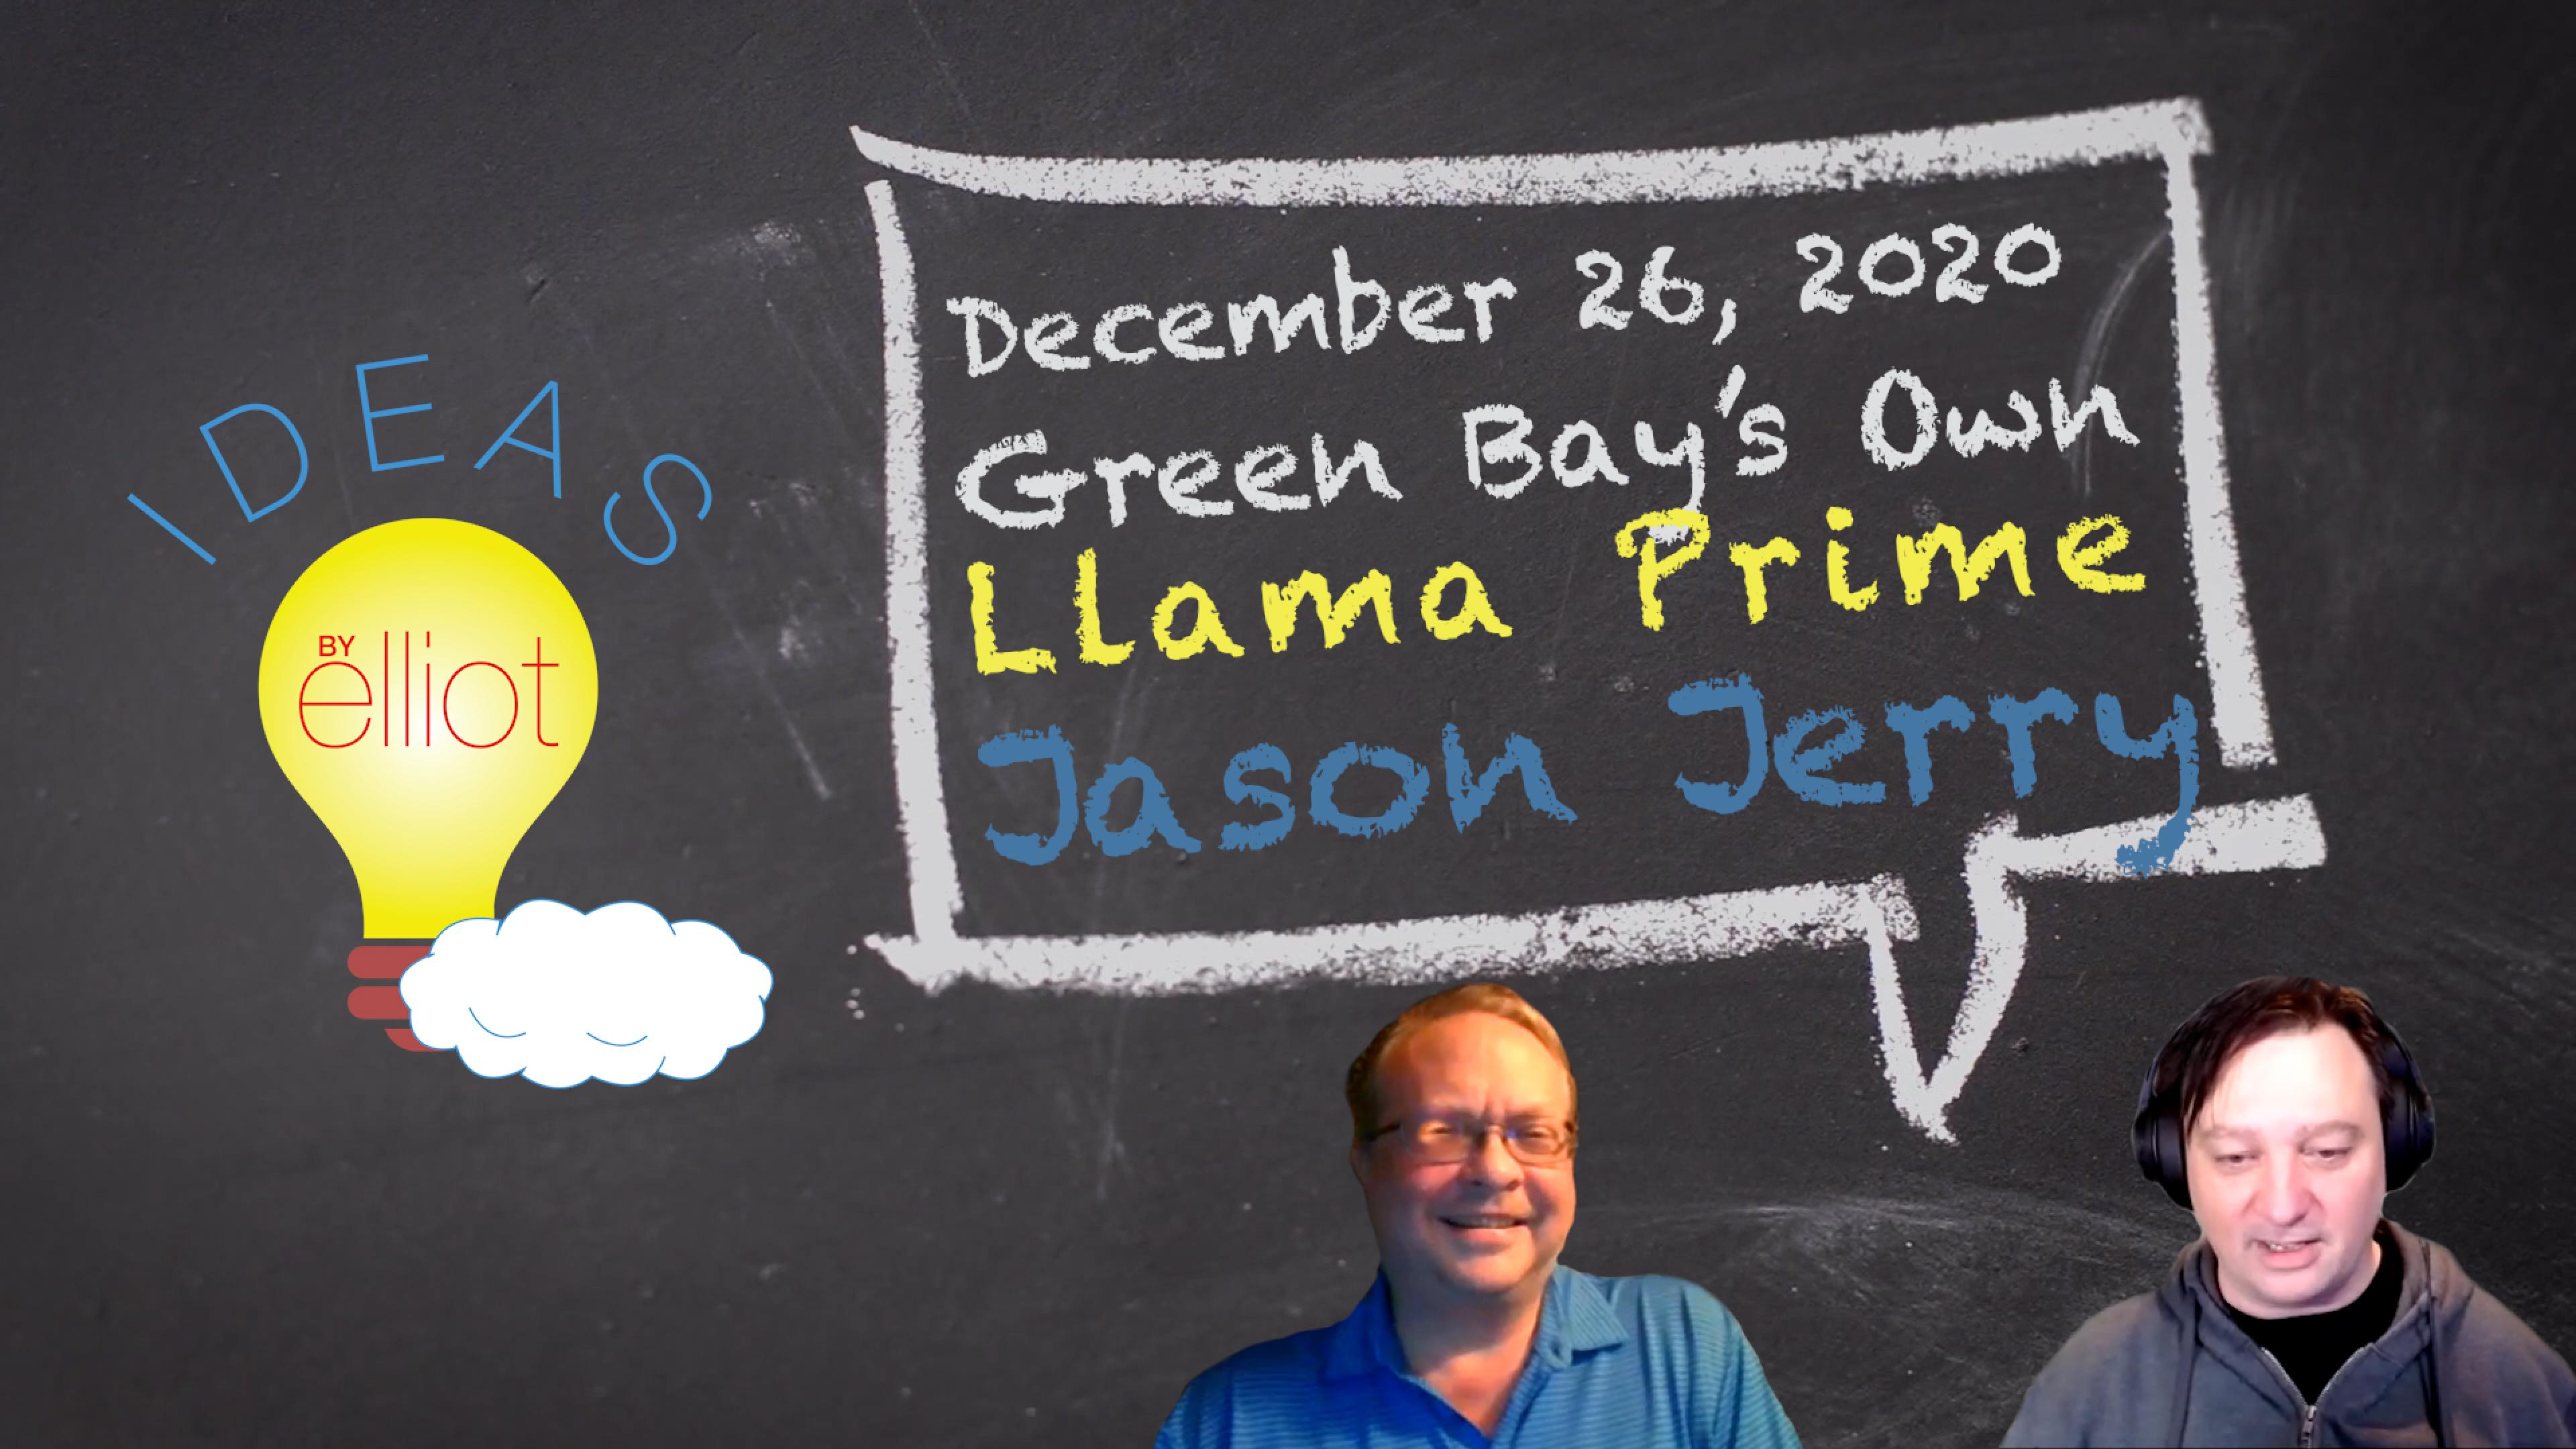 Green Bay's Llama Prime: Jason Jerry on Movies, Politics, and #ibelievenate